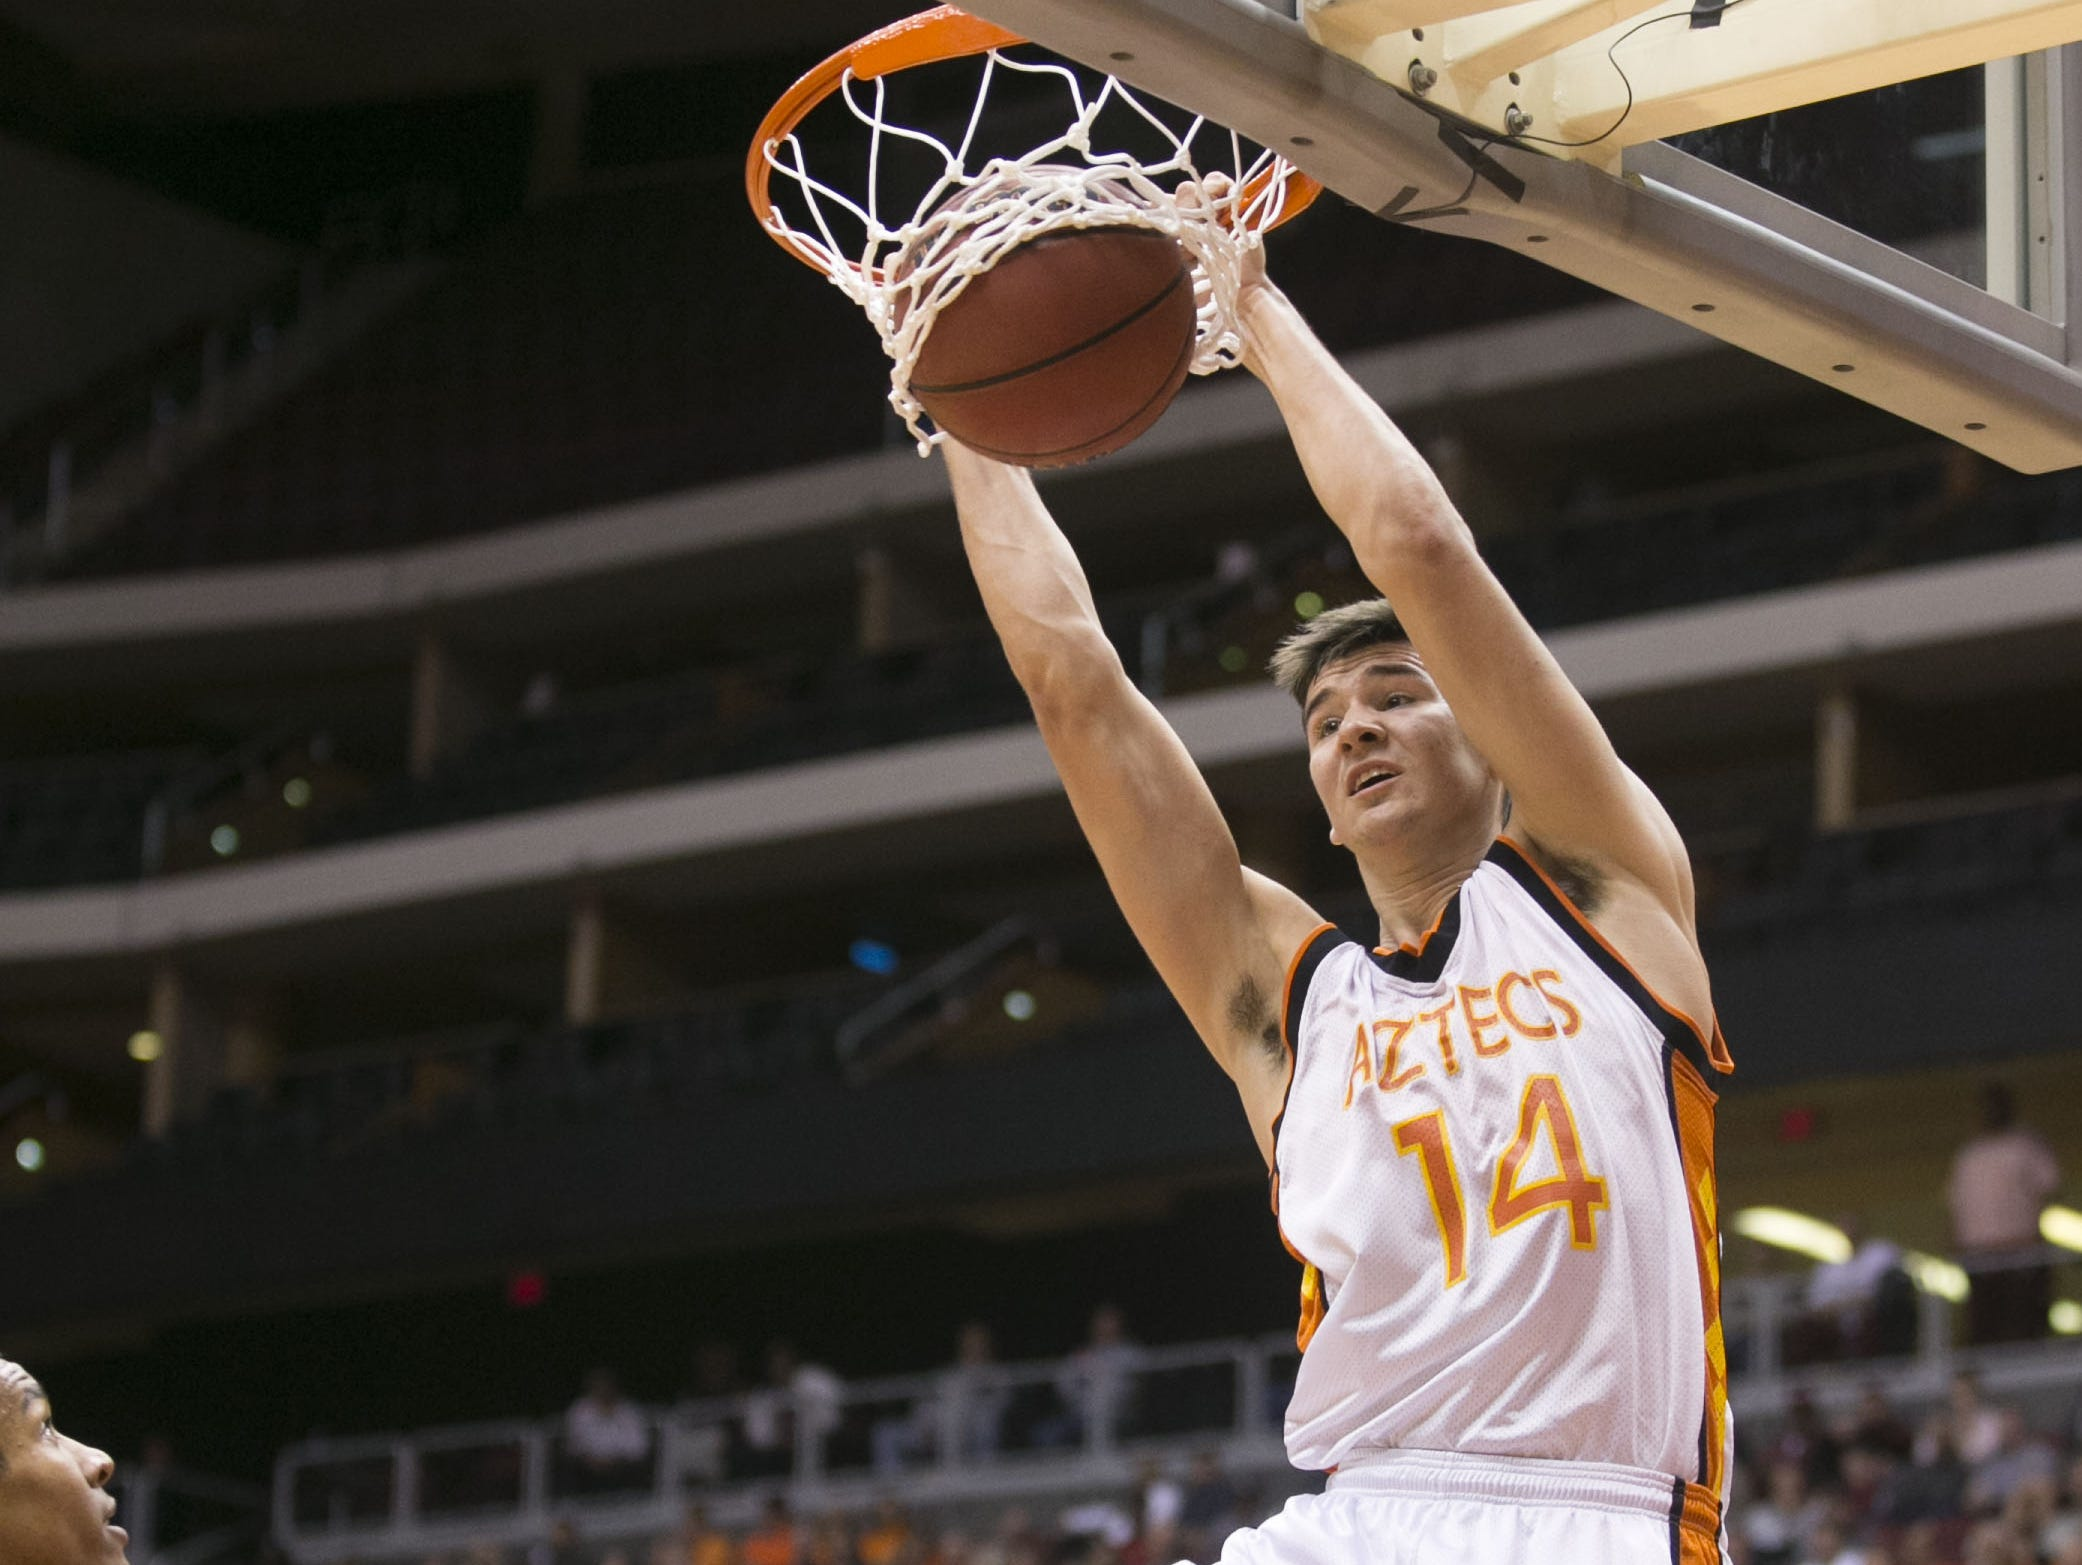 Corona del Sol's Dane Kuiper dunks the ball against Desert Vista in the second half during the D1 State Final game at Gila River Arena in Glendale, AZ.